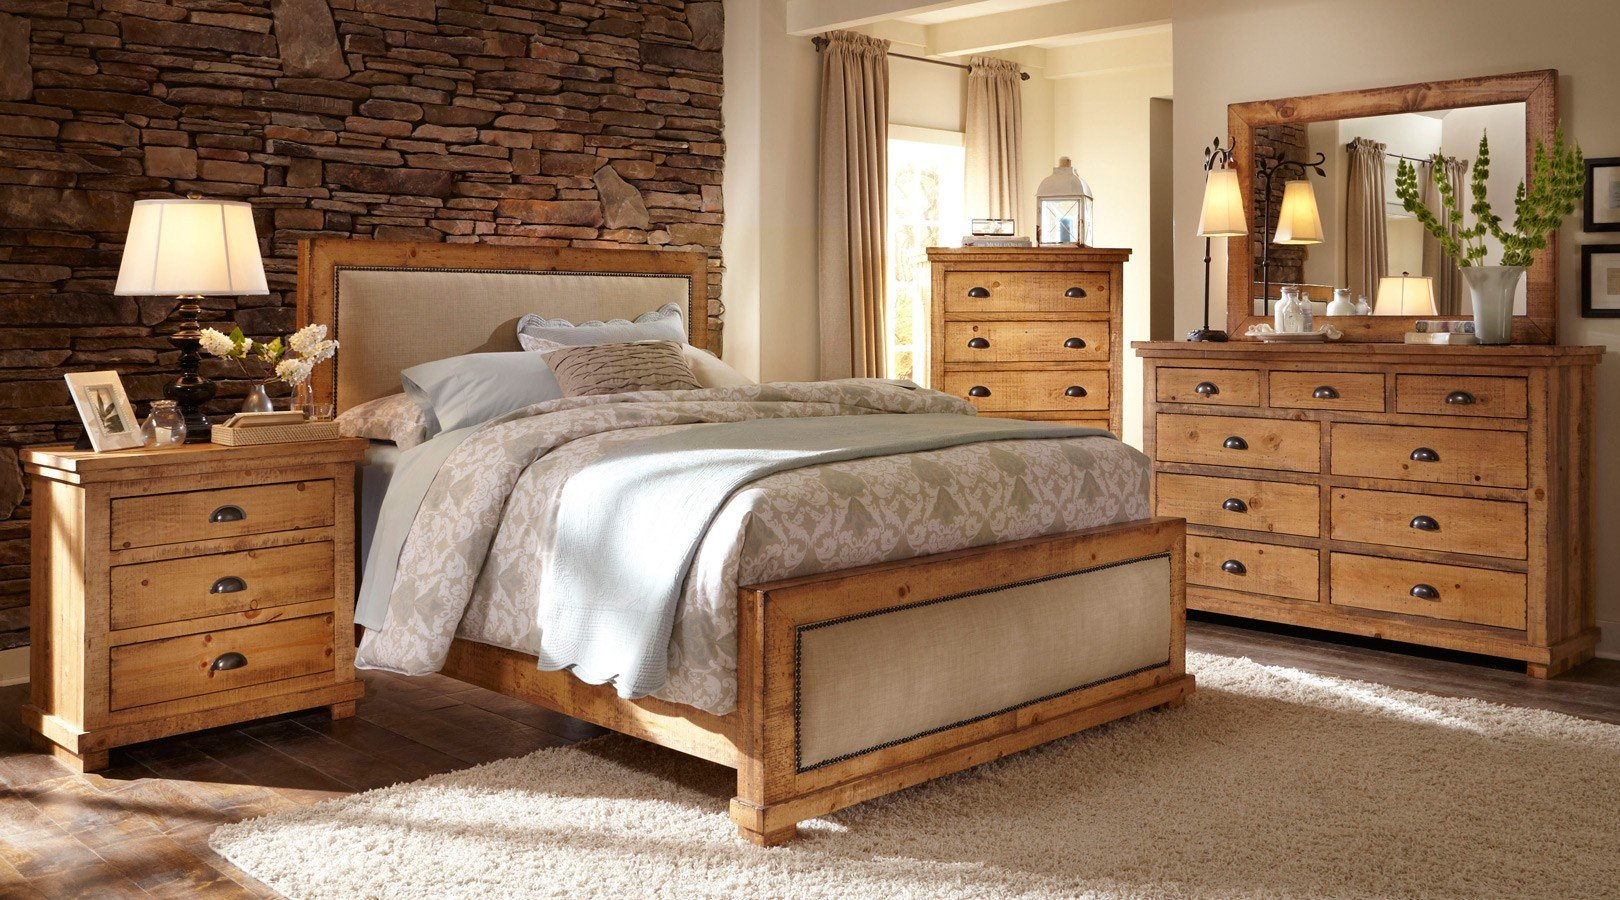 Willow Upholstered Bedroom Set (Distressed Pine)